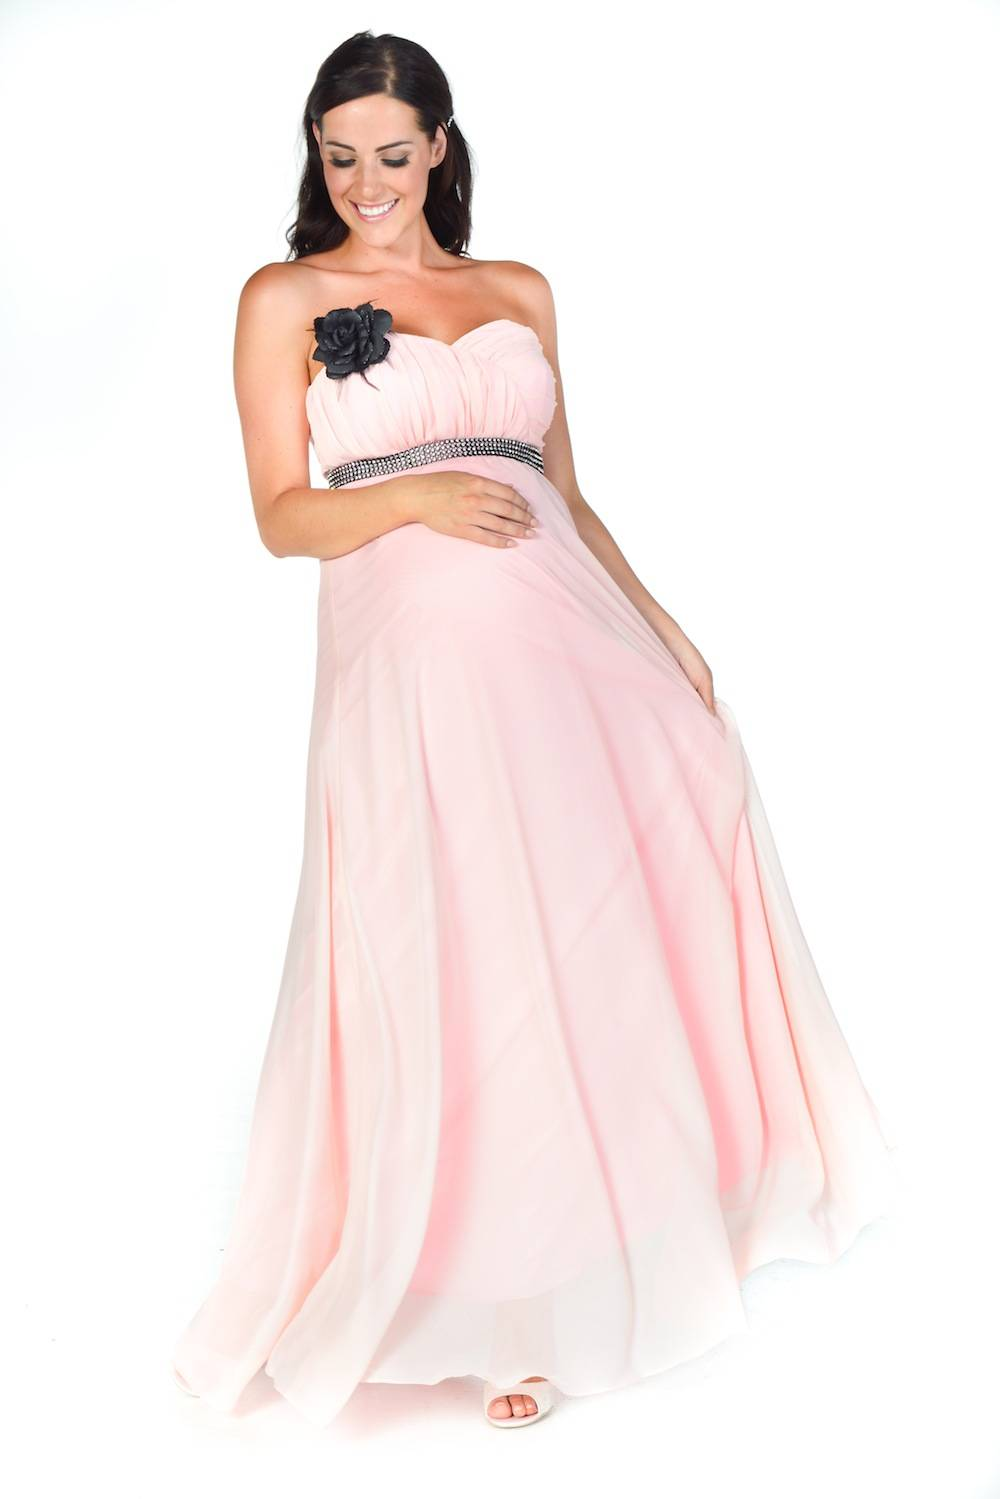 BEAUTIFUL MATERNITY DRESSES FOR BABYSHOWER Godfather for Best Dress For Baby Shower Guest